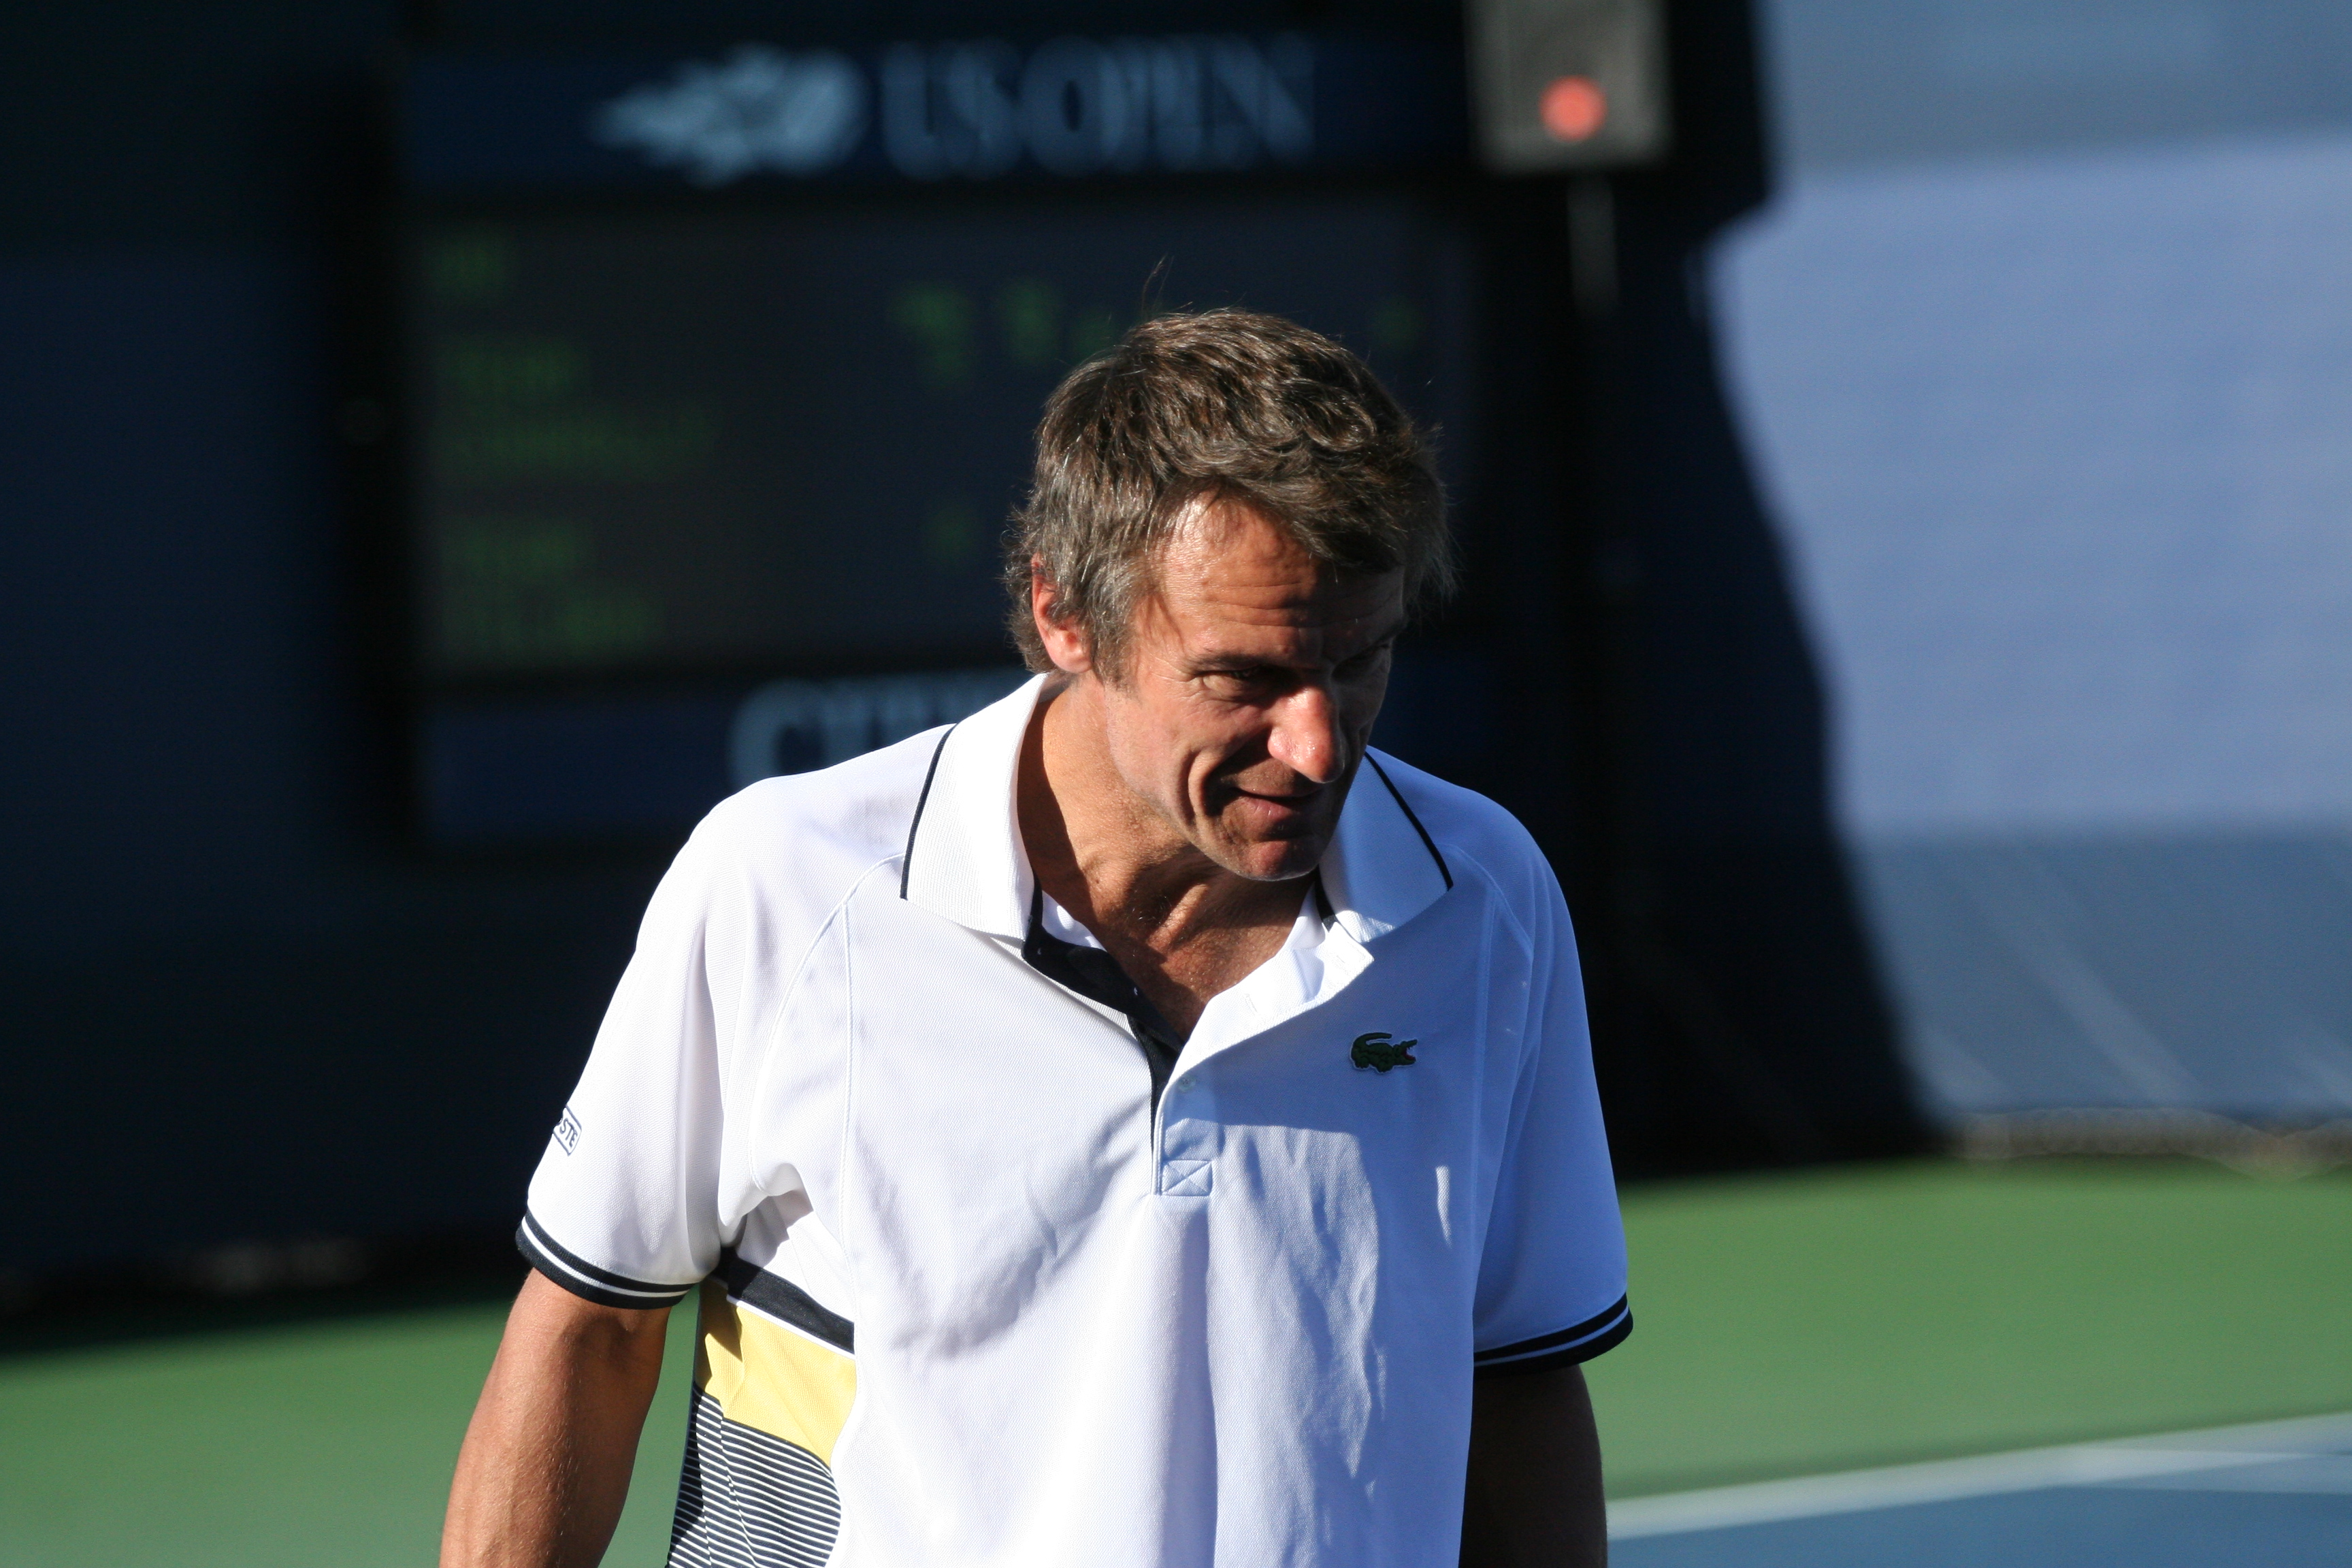 File Mats Wilander at the 2010 US Open 01 Wikimedia mons